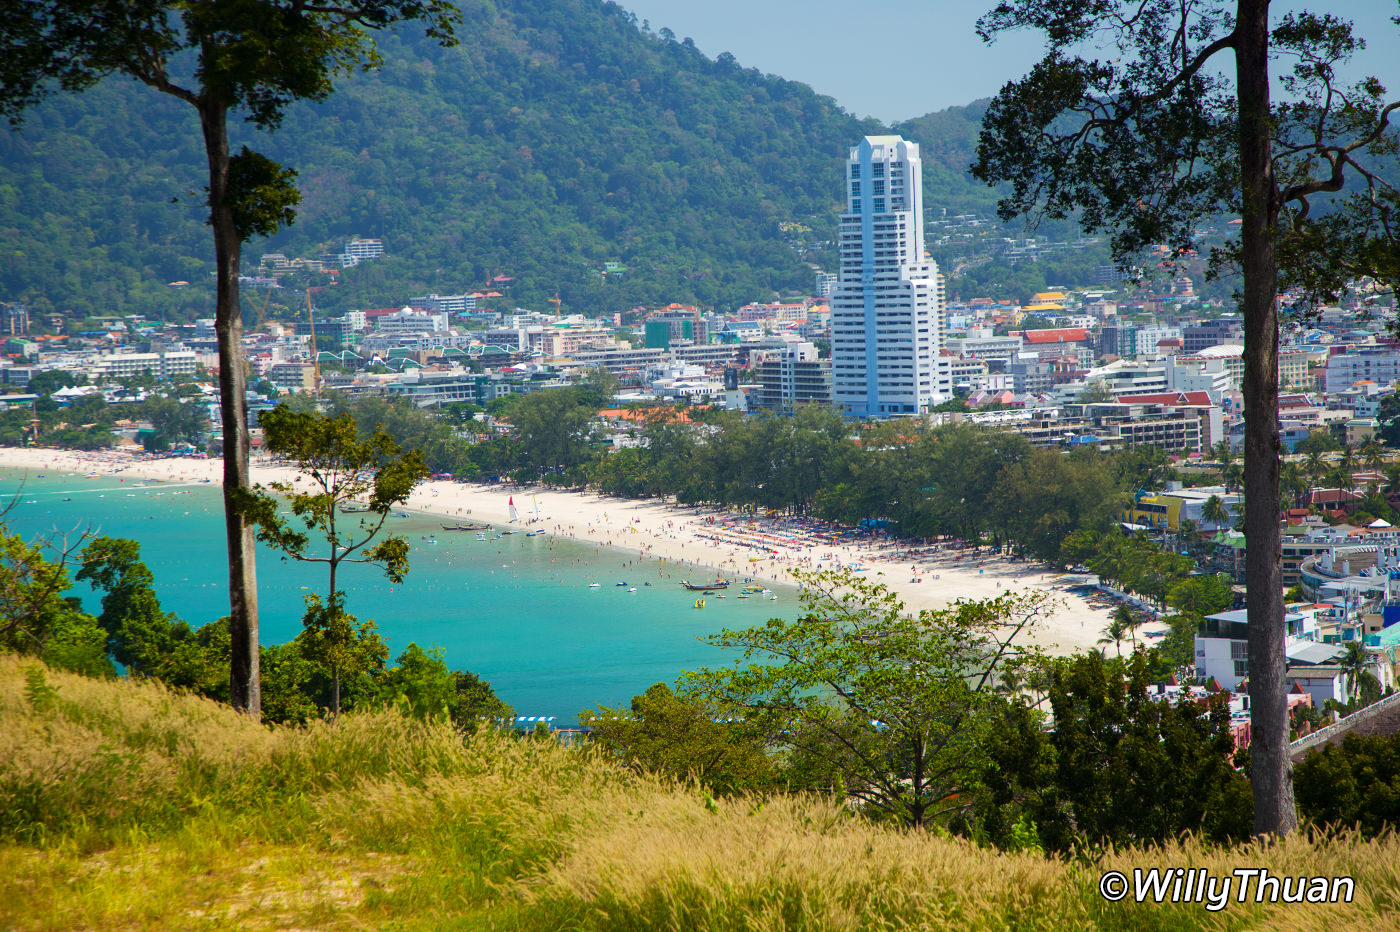 Patong Beach - What to Do in Patong - Phuket 101